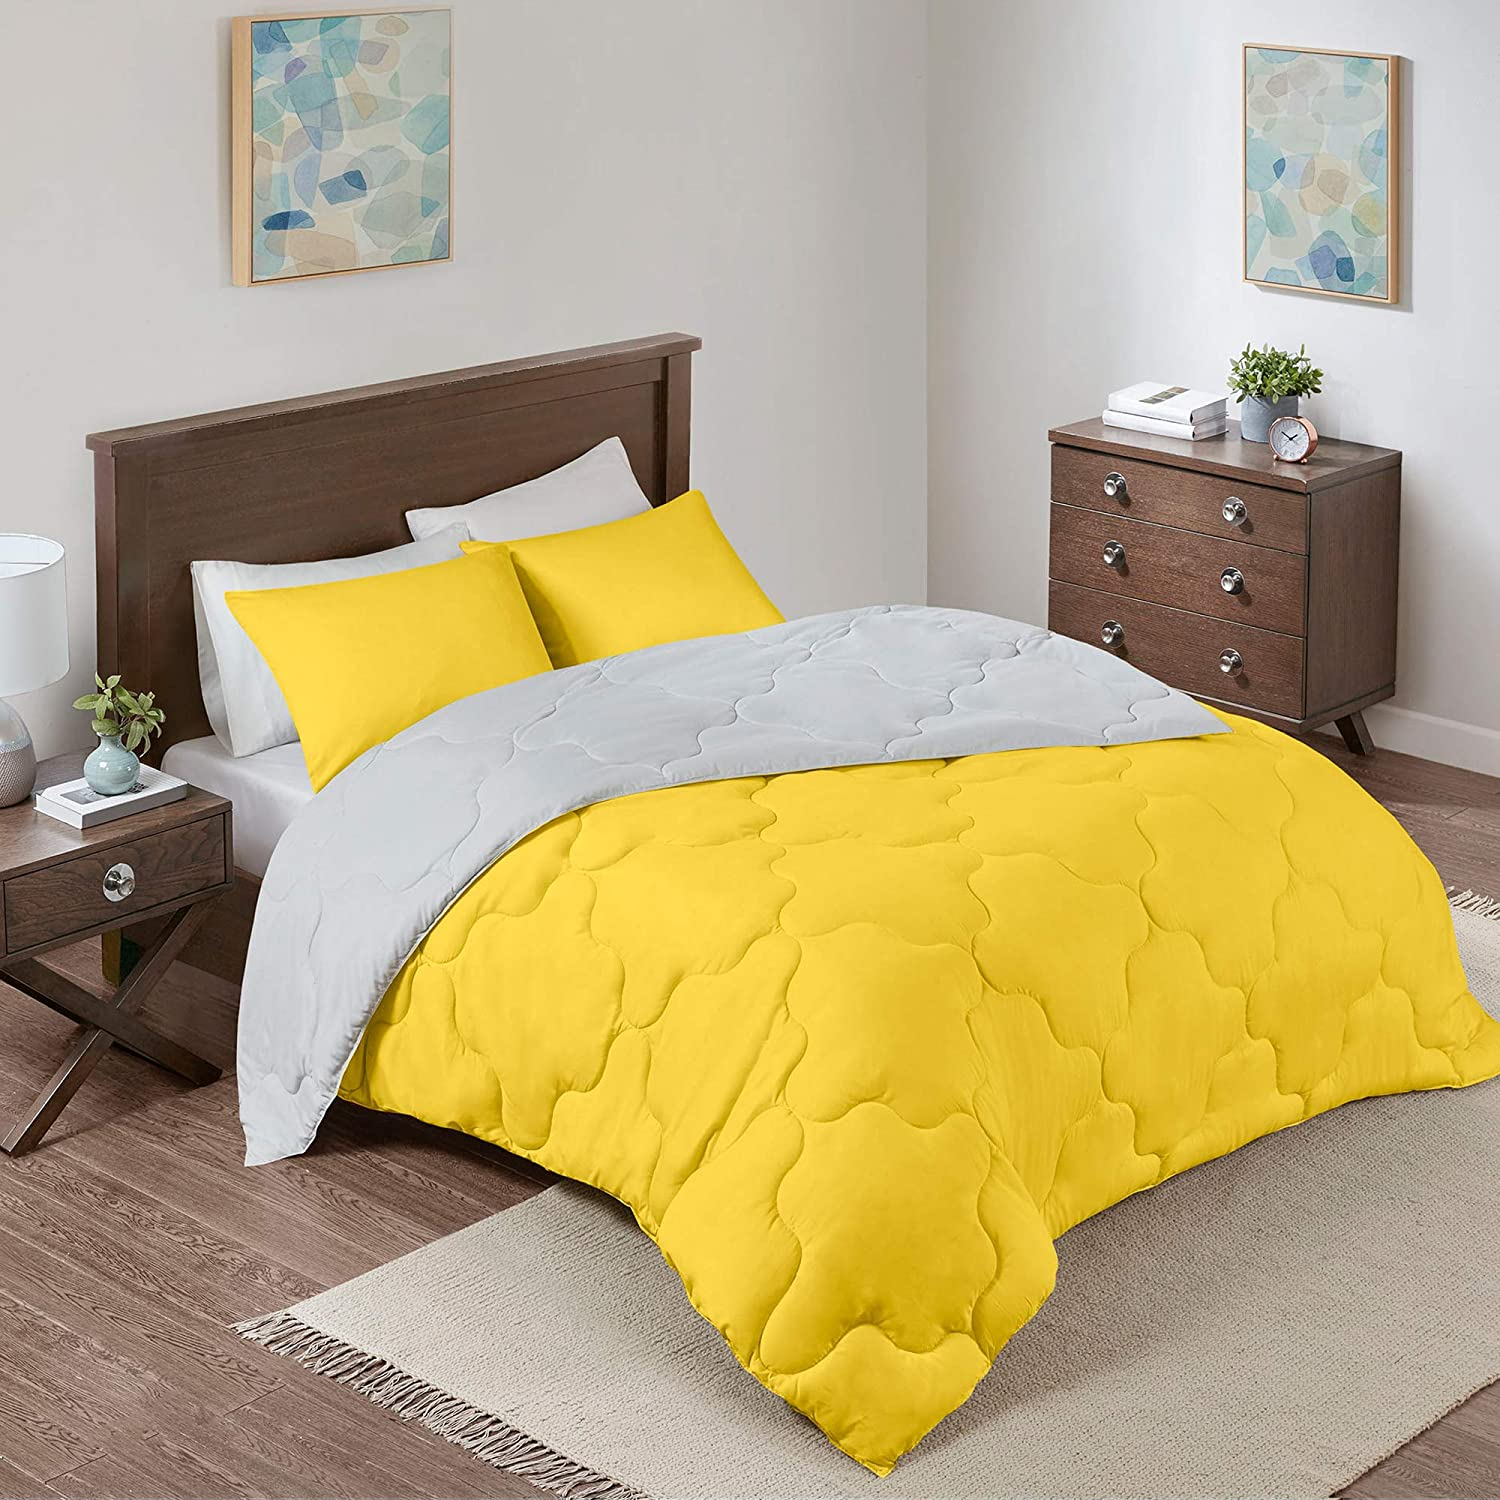 Comfort Spaces – Vixie Reversible Goose Down Alternative Comforter Mini Set - 3 Piece – Yellow and Grey – Stitched Geometrical Patter